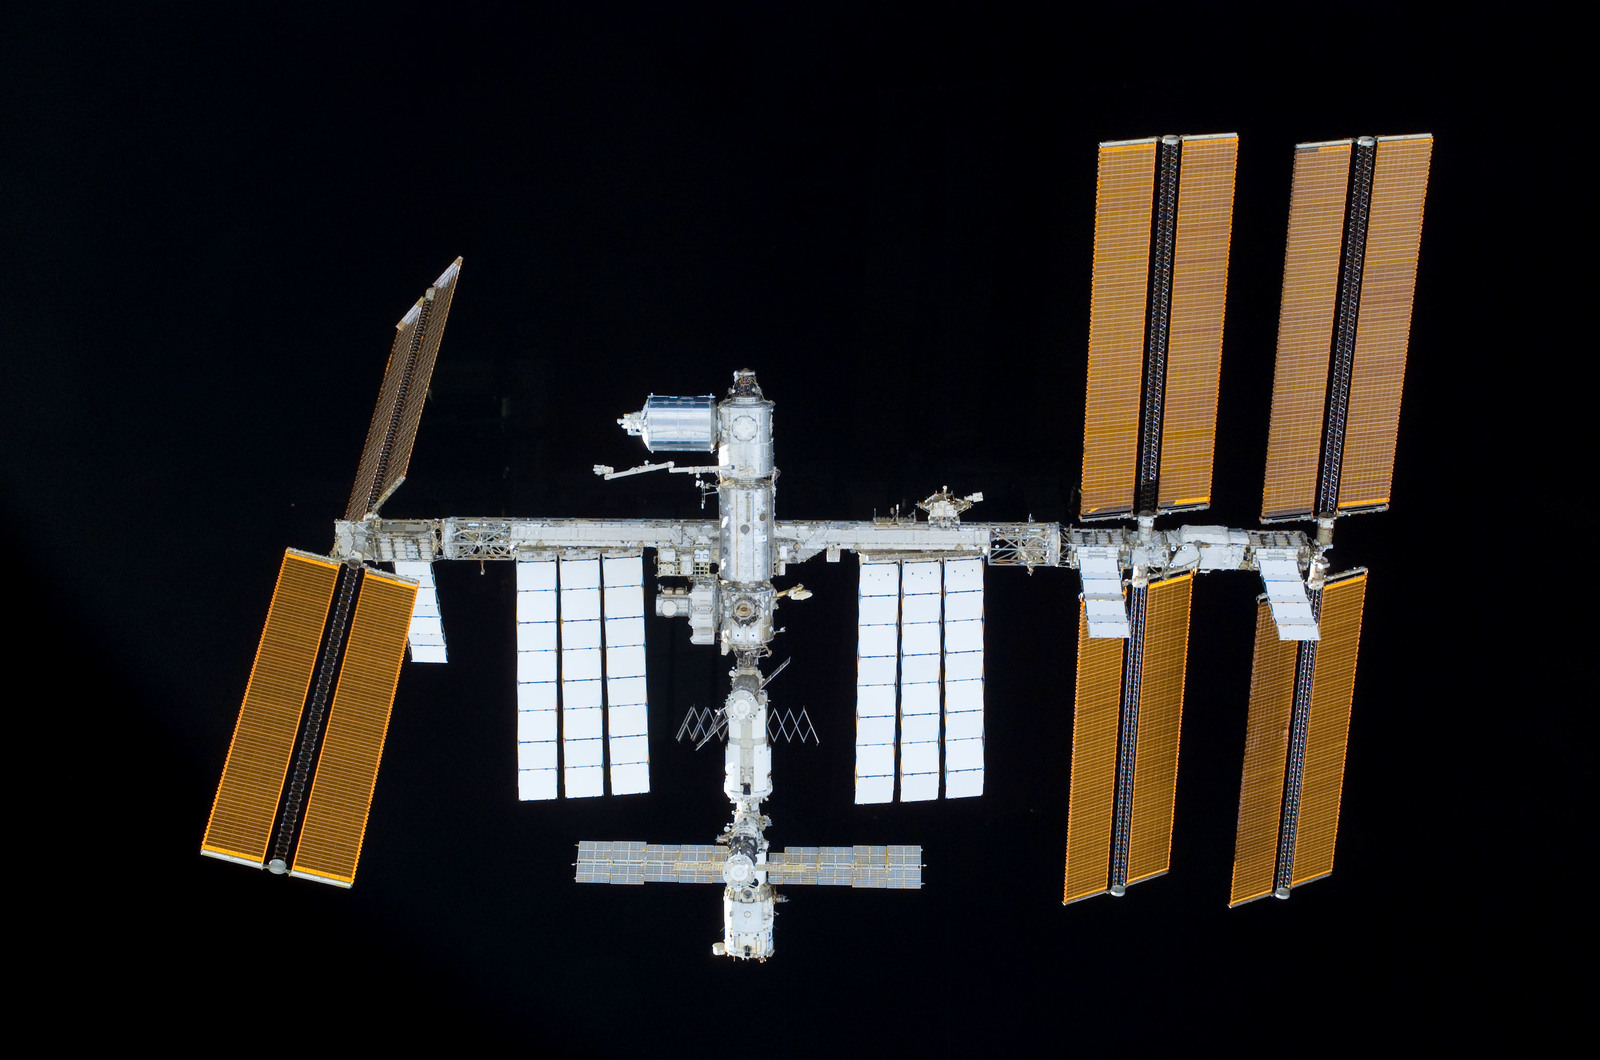 S122E011030 - STS-122 - View of ISS after STS-122 Undocking